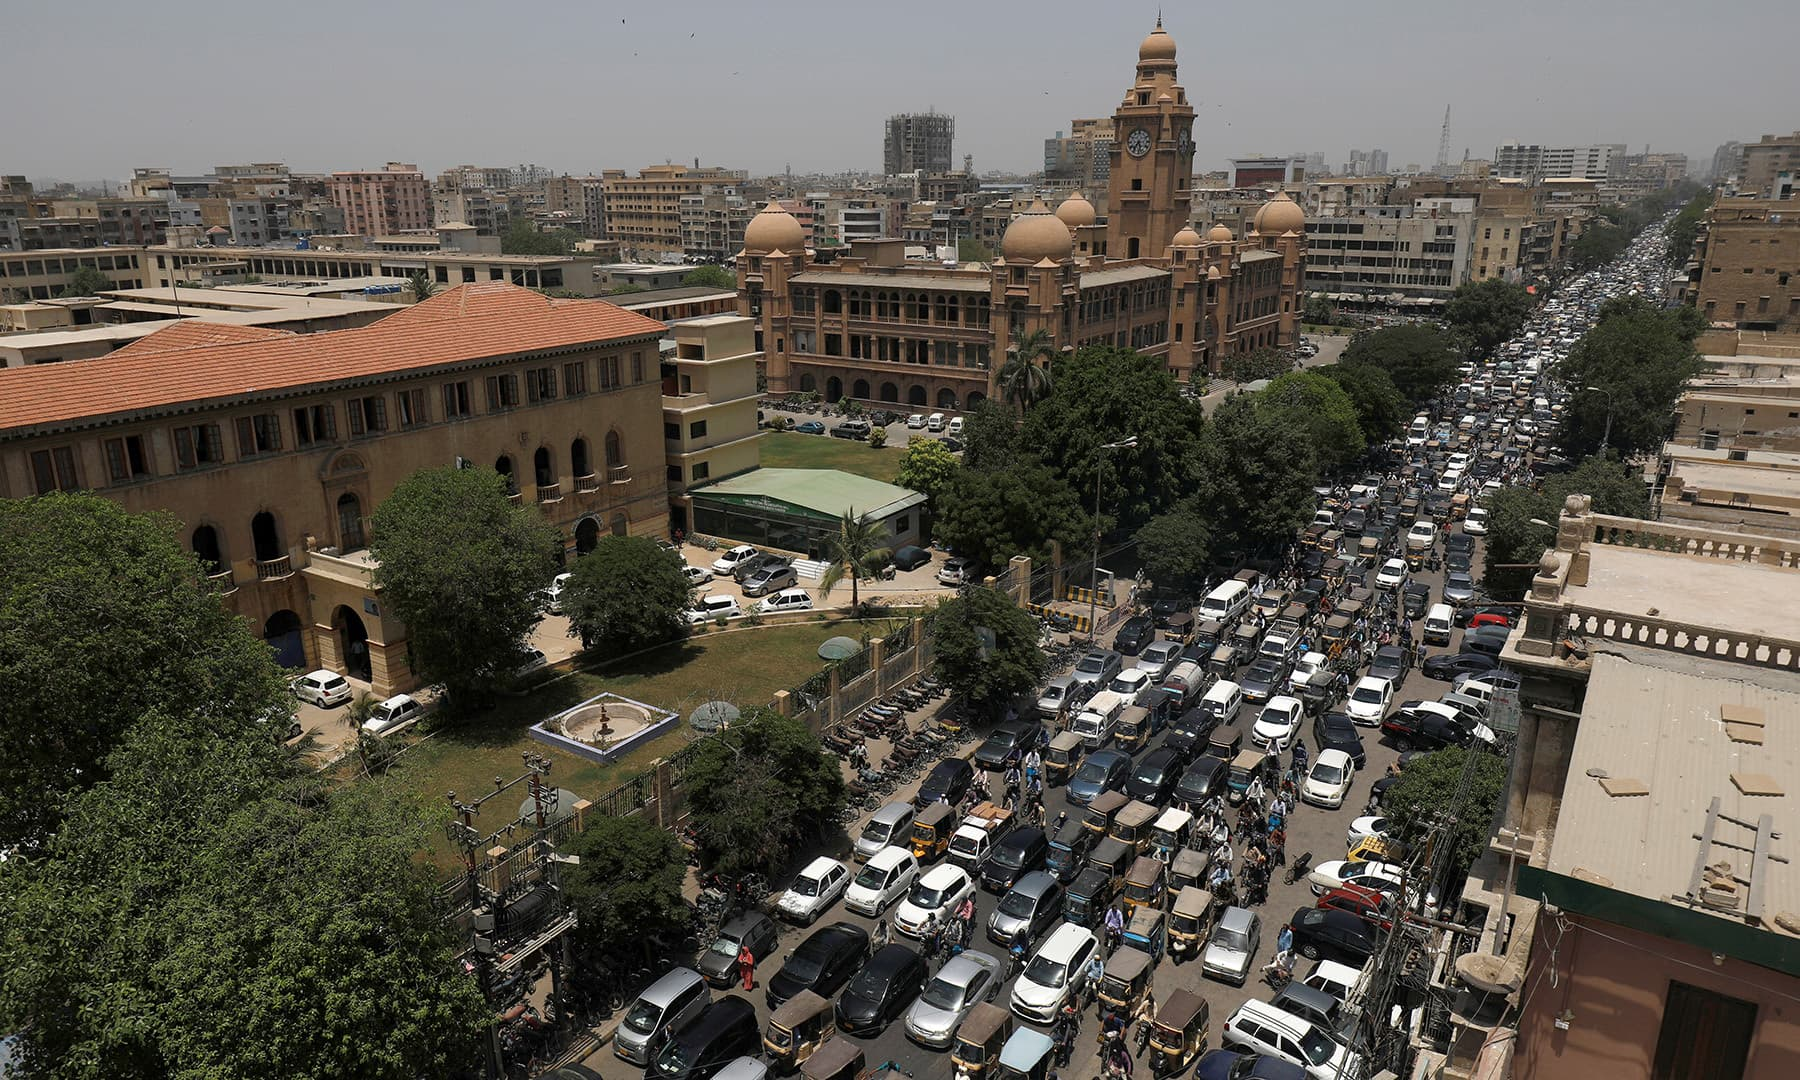 A general view of road traffic and the Karachi Metropolitan Corporation (KMC) building in the background in Karachi on Monday. — Reuters